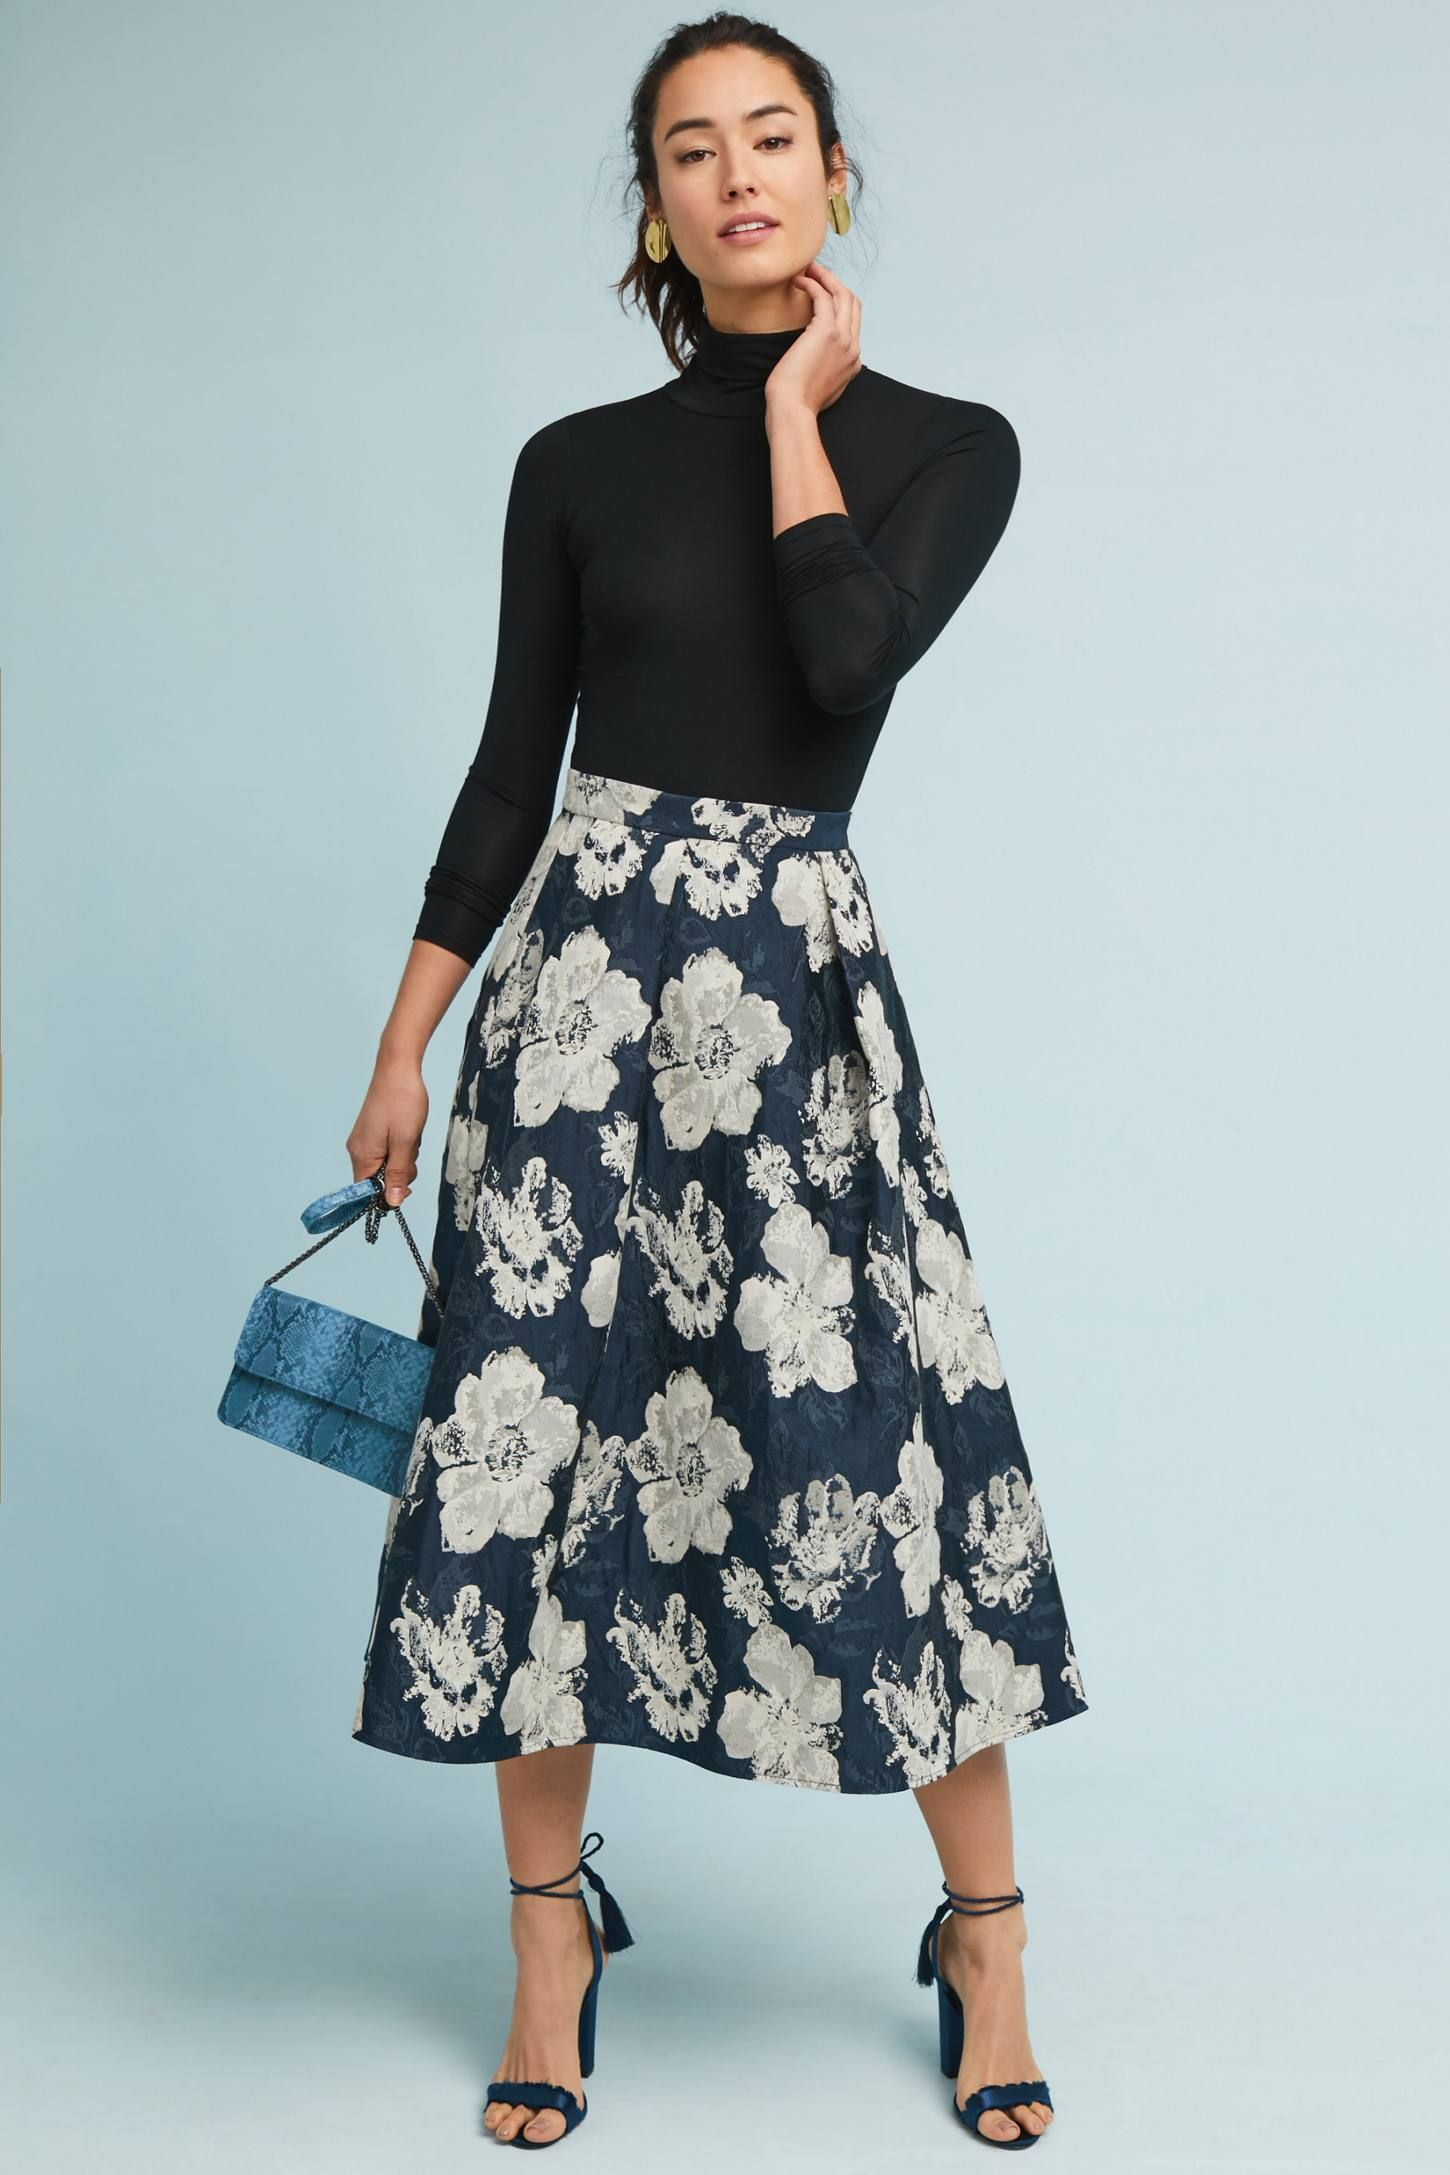 dc83c3f4f4 Shop the Melanie Jacquard Skirt and more Anthropologie at Anthropologie  today. Read customer reviews, discover product details and more.